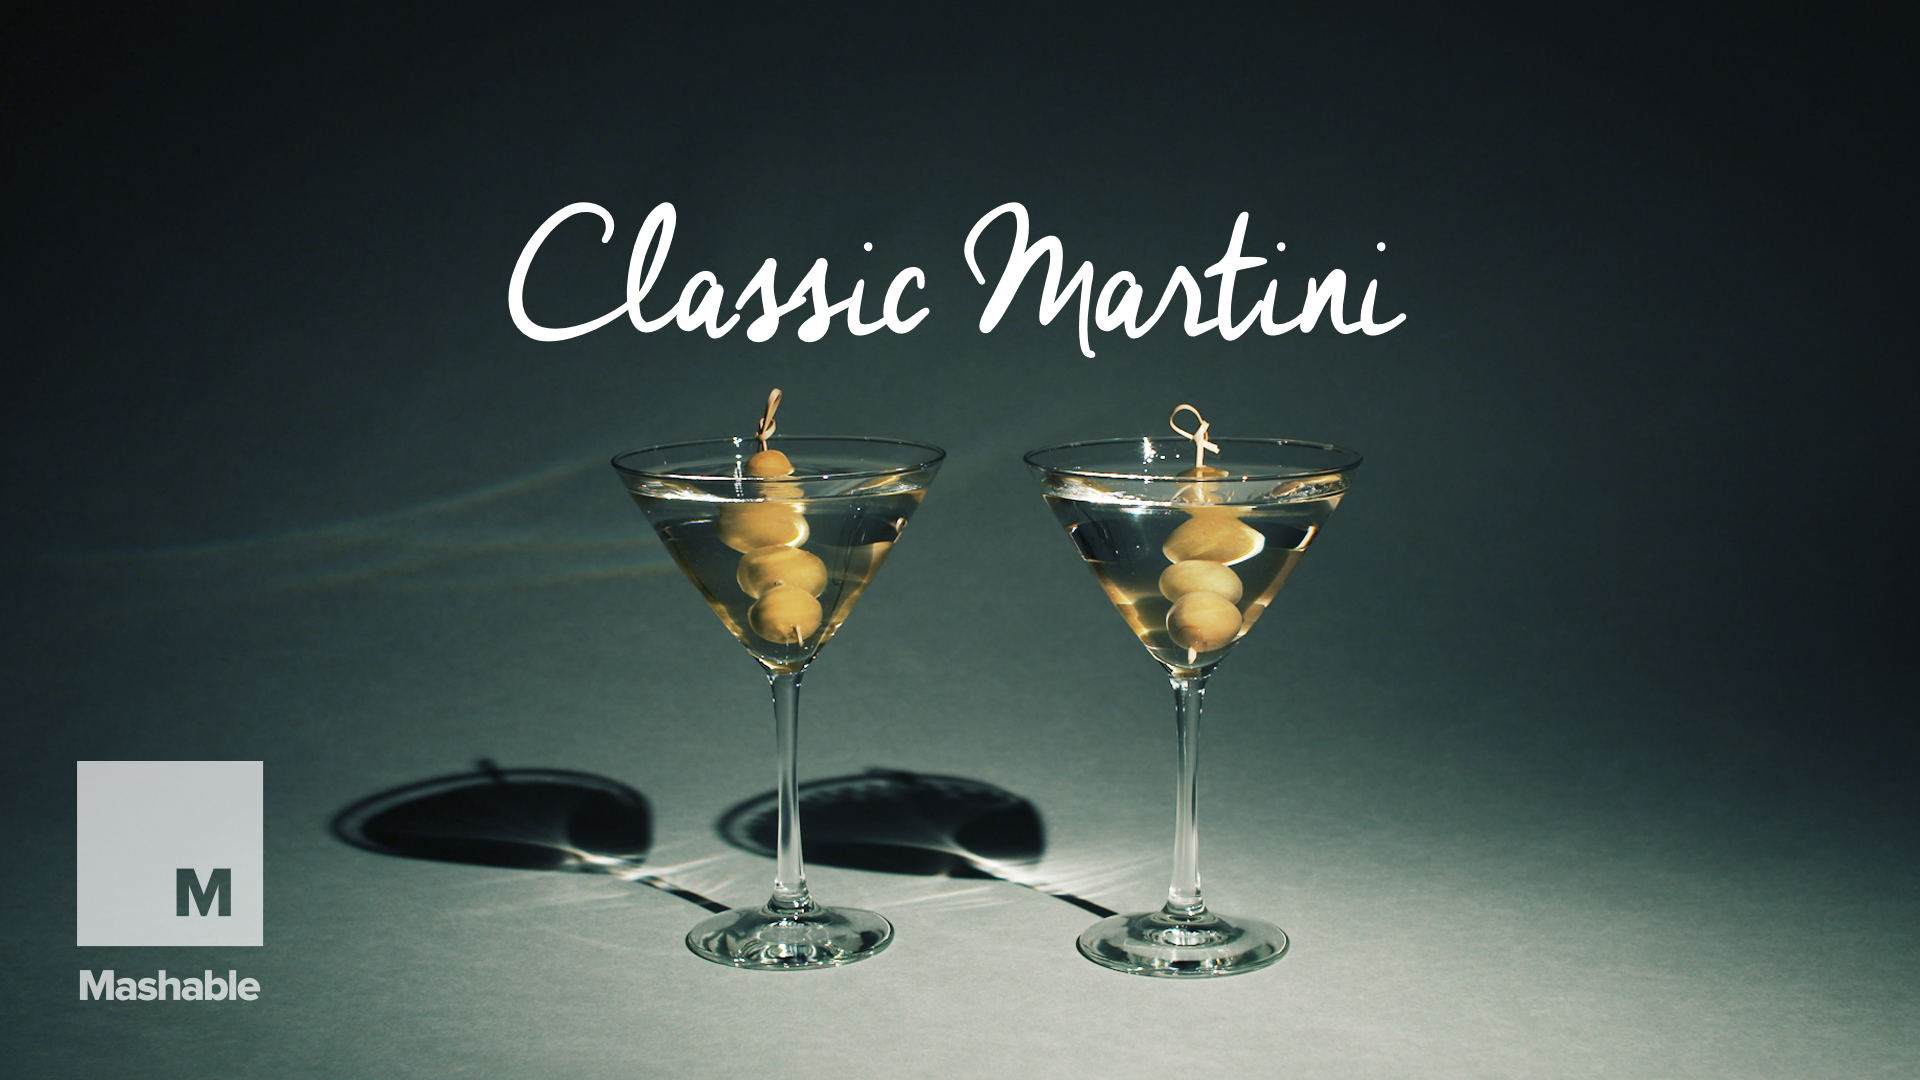 These Elegant Martinis Will Steal the Show at Your Oscar Party